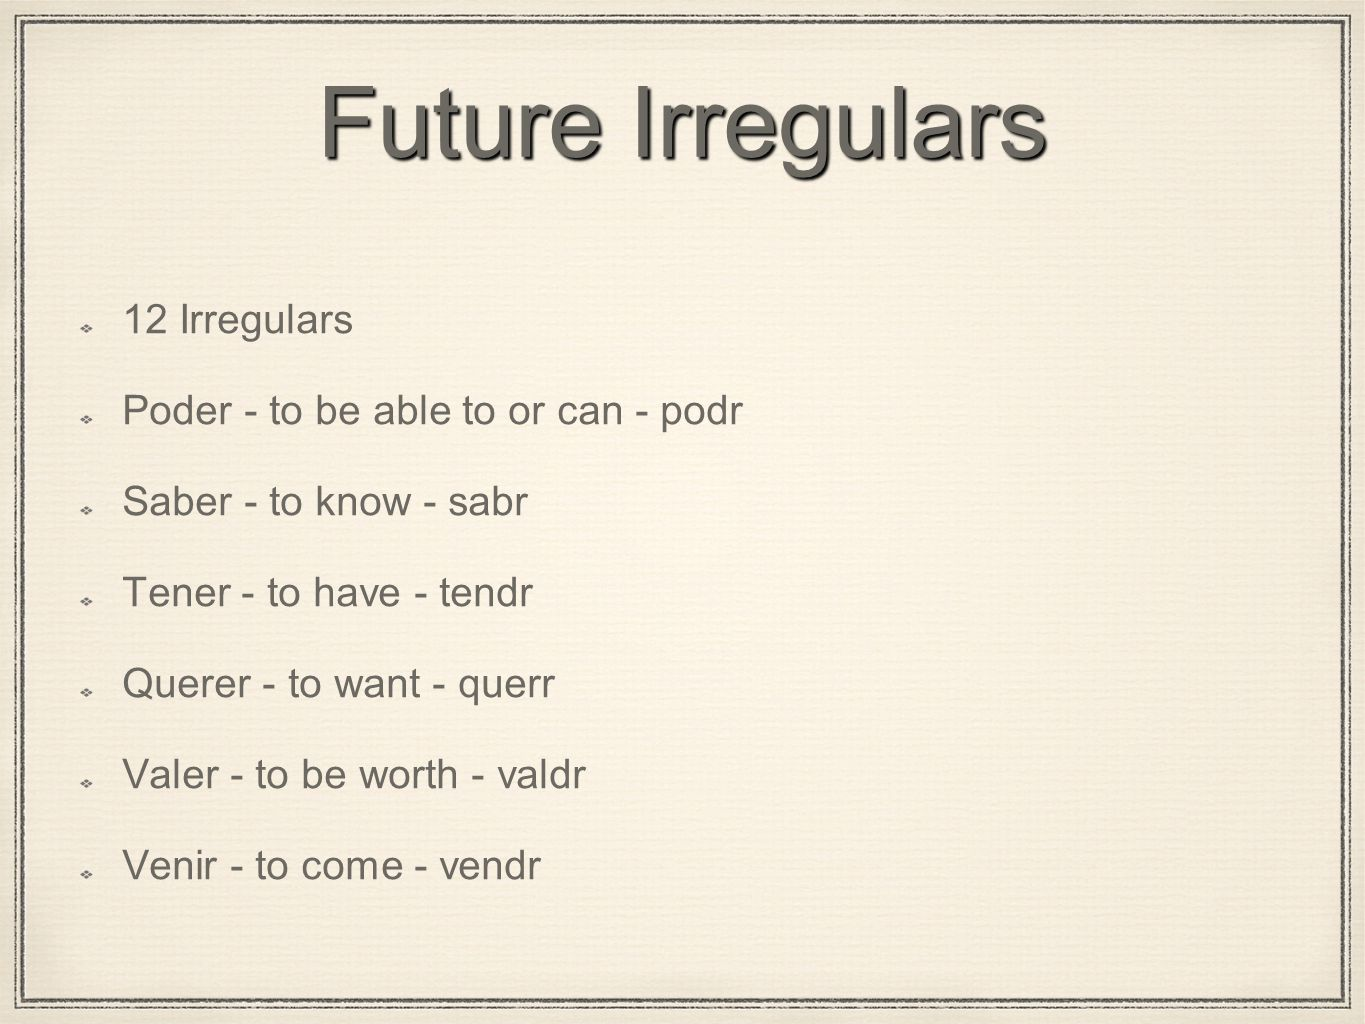 Future Irregulars 12 Irregulars Poder - to be able to or can - podr Saber - to know - sabr Tener - to have - tendr Querer - to want - querr Valer - to